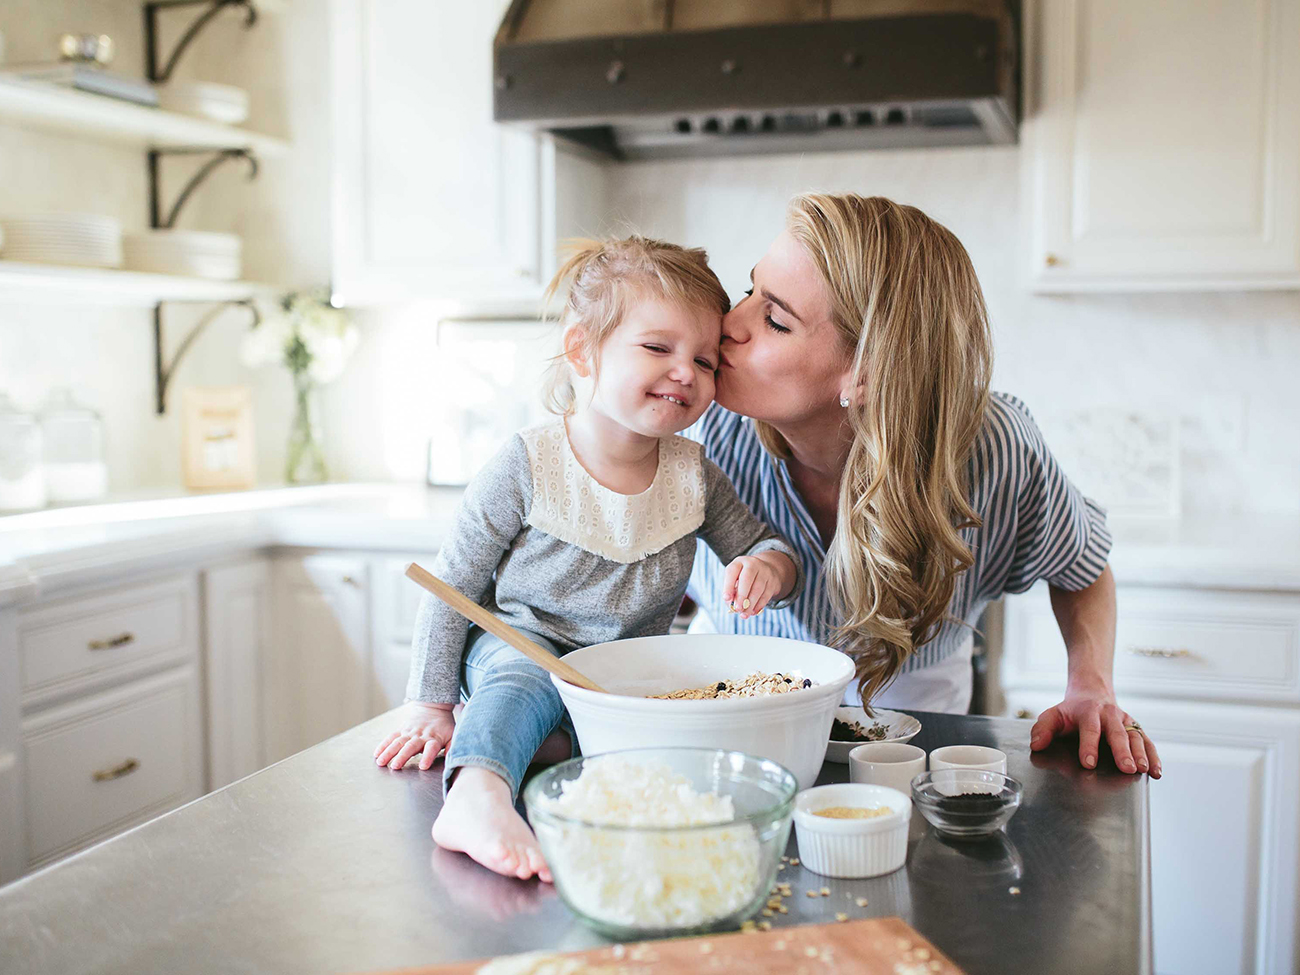 Charlotte brand Milkful builds popular snack brand for nursing moms